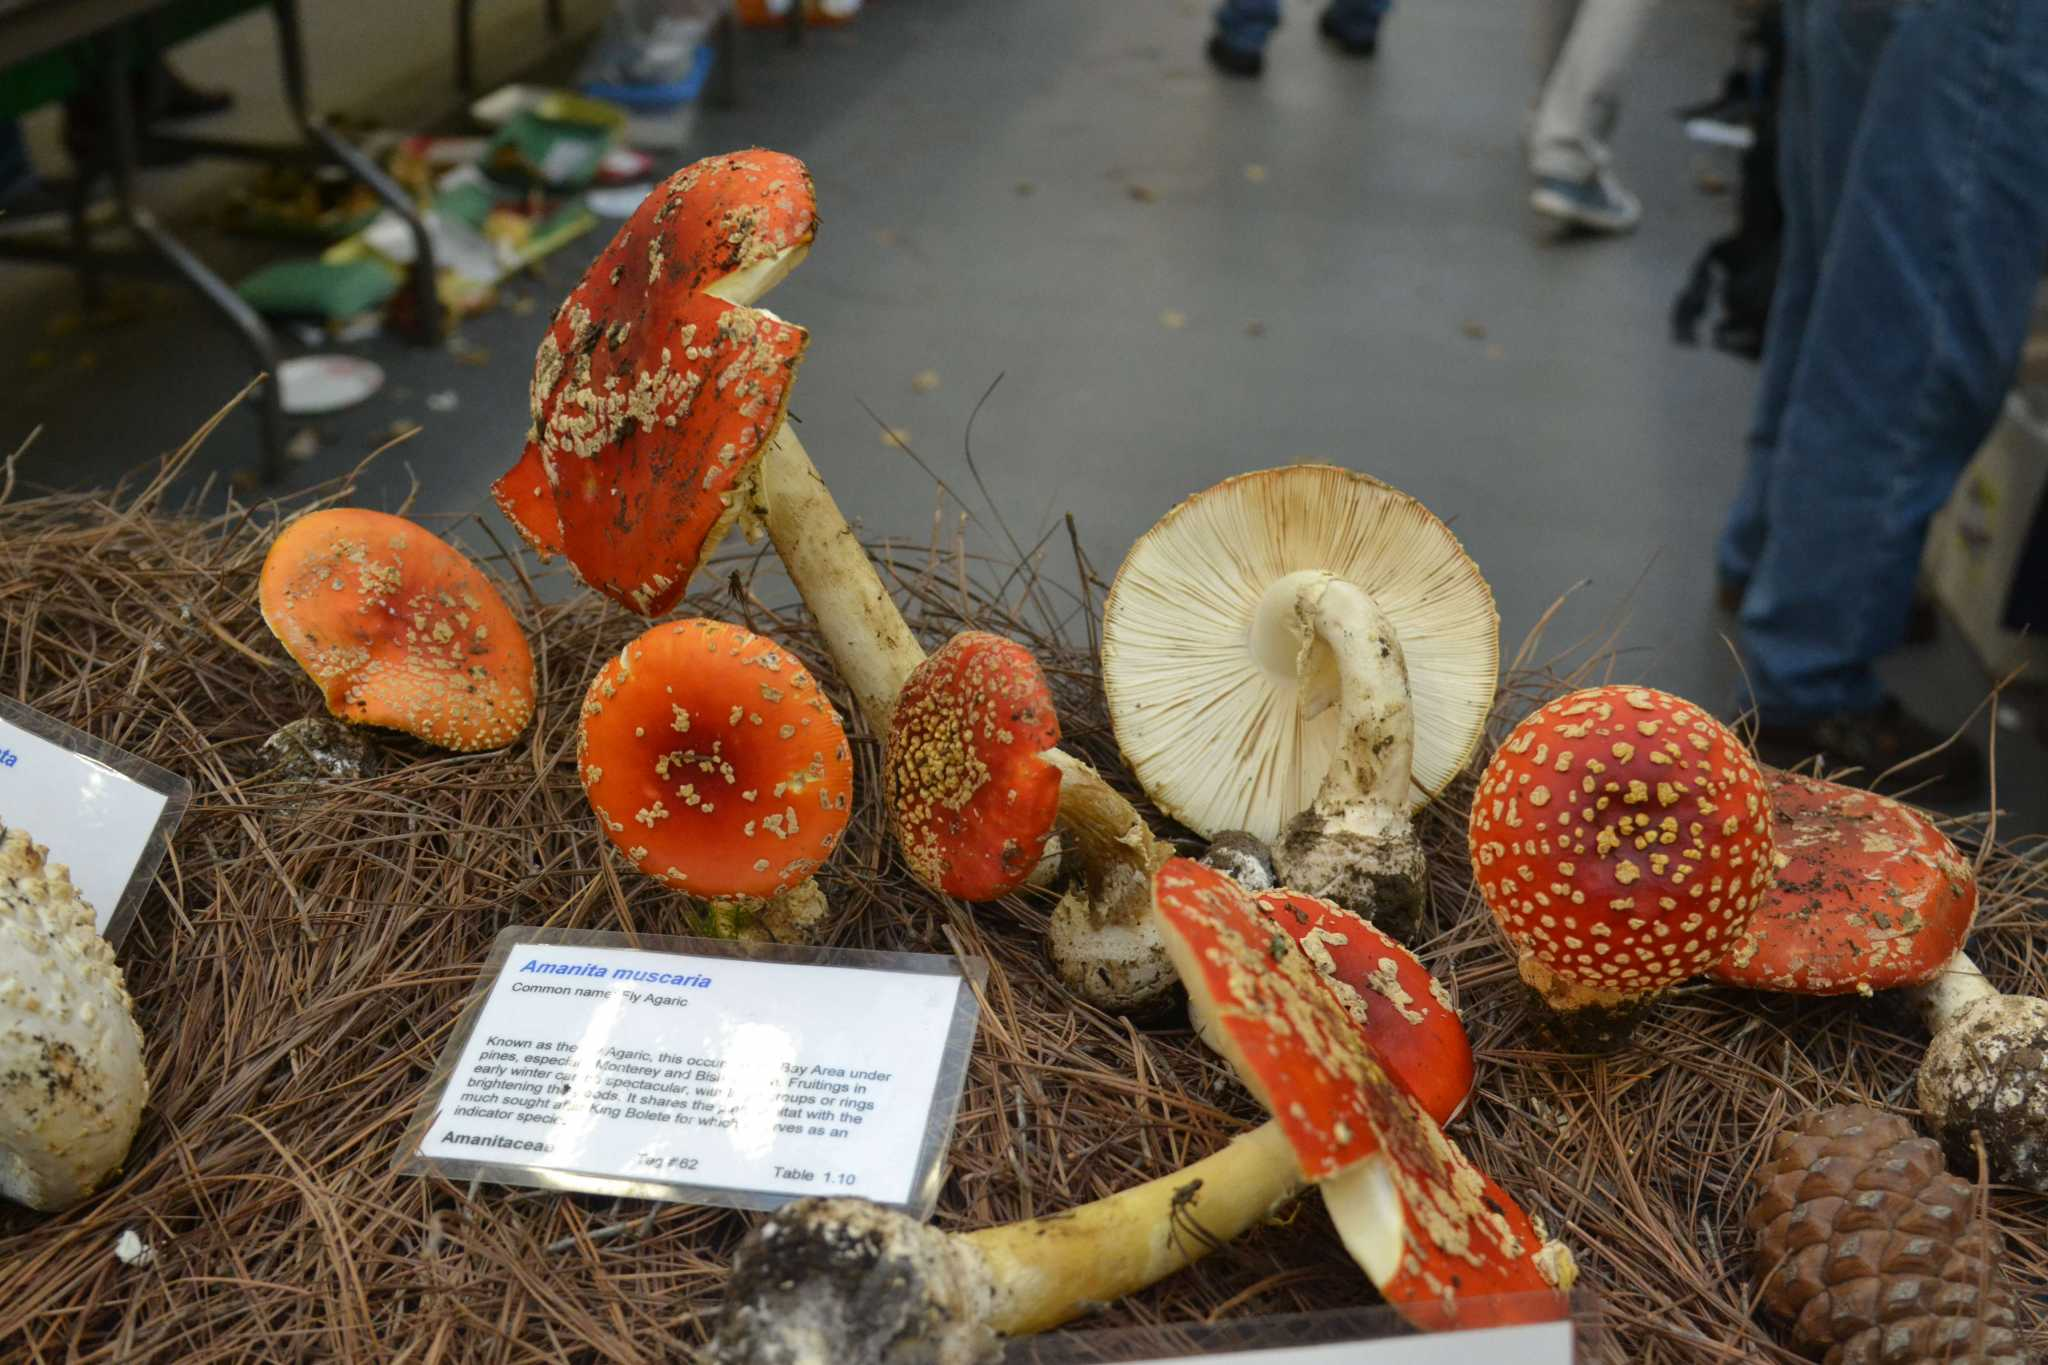 Some Amanita muscaria mushrooms are displayed at the annual Fungus Fair, put on by the Mycological Society of San Francisco. Sunday, December 7th, 2014.  Helen Tinna/Xpress